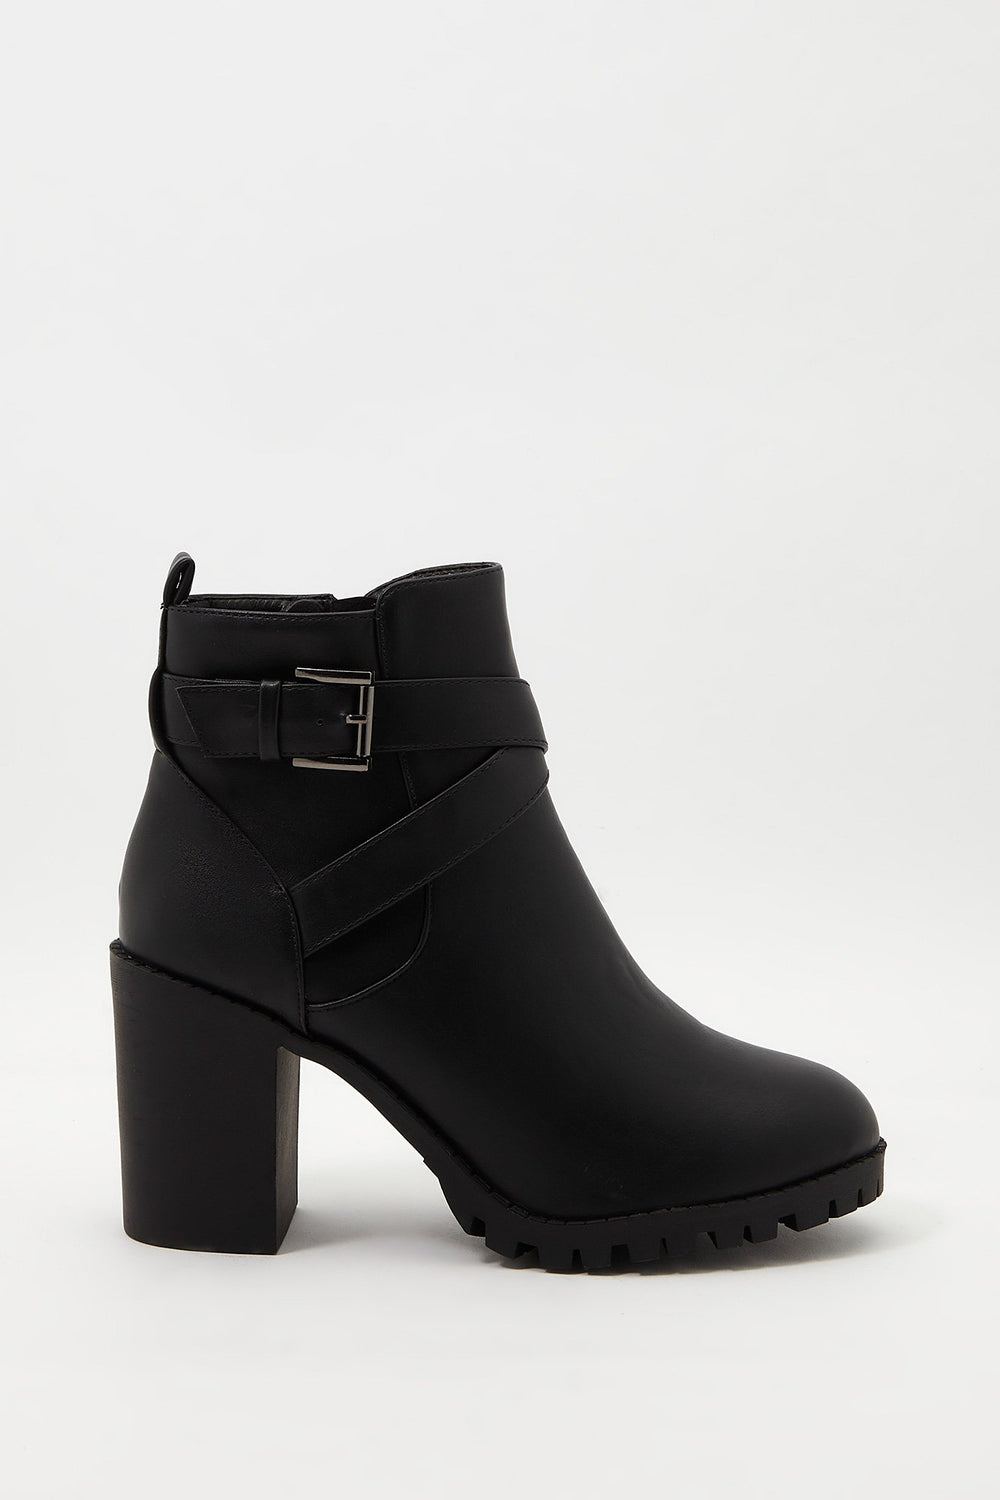 Buckle Faux-Leather Bootie Black